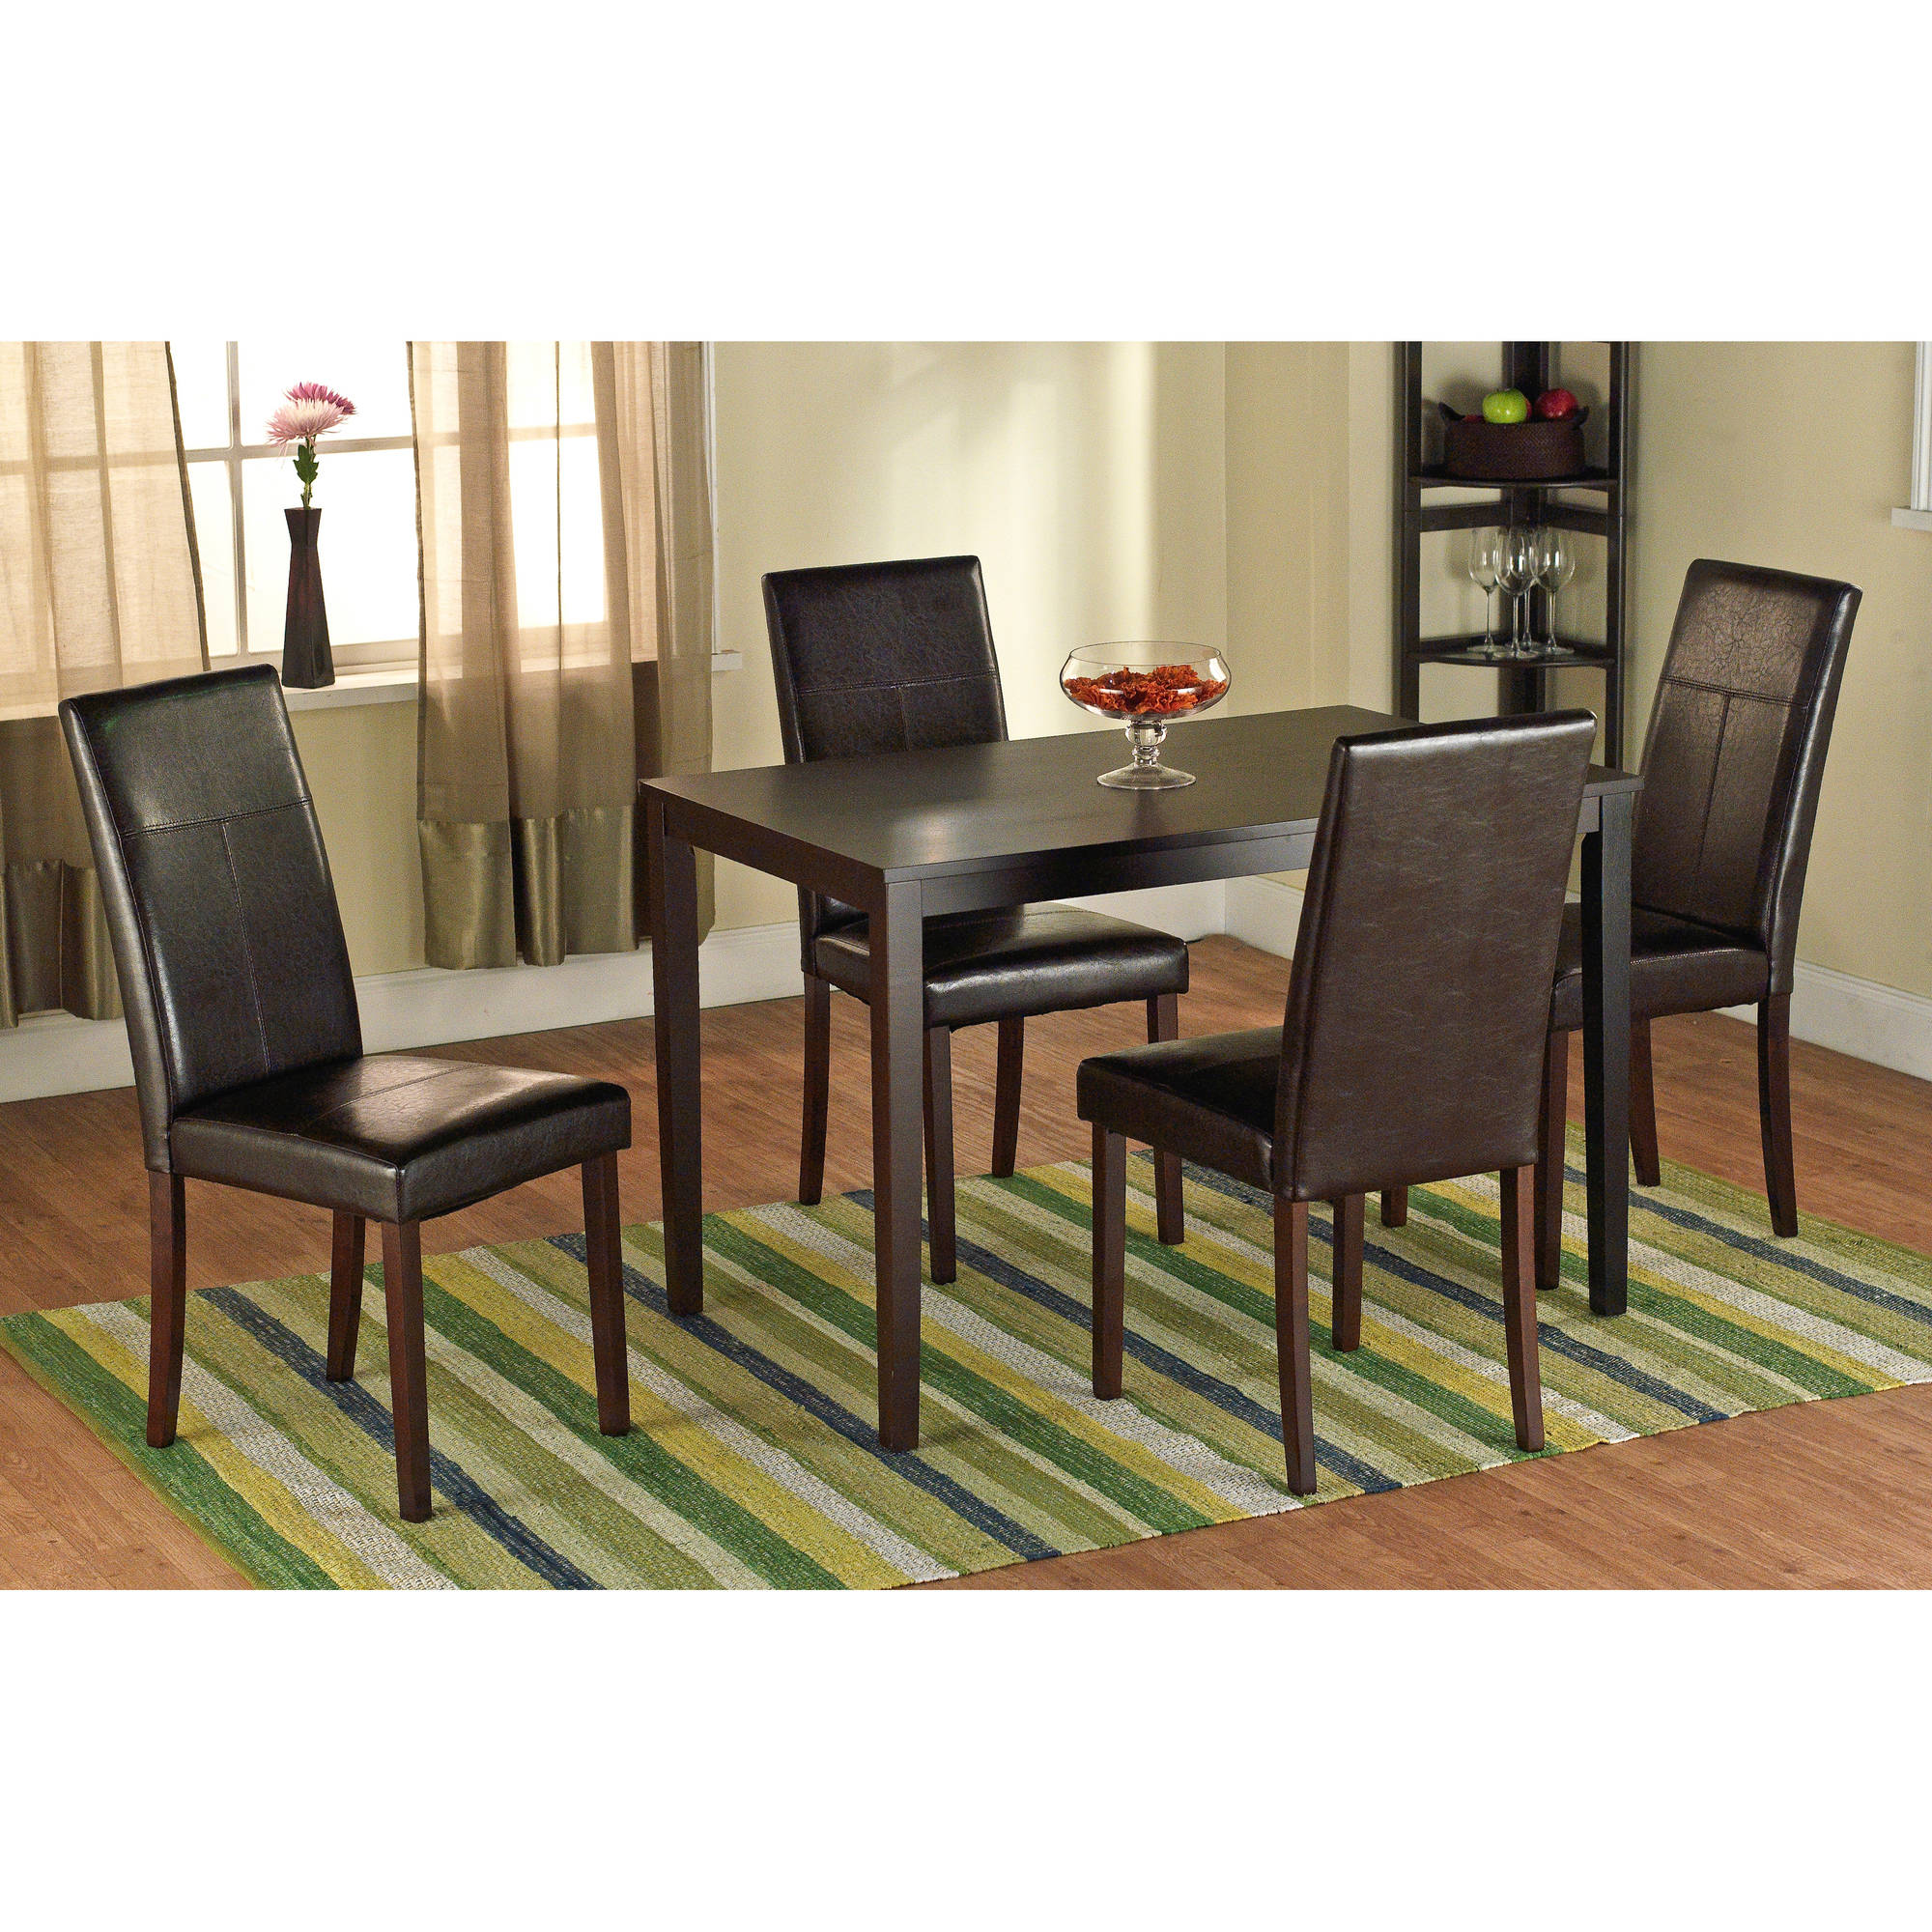 Faux Leather Parson Dining Chair, Set Of 2